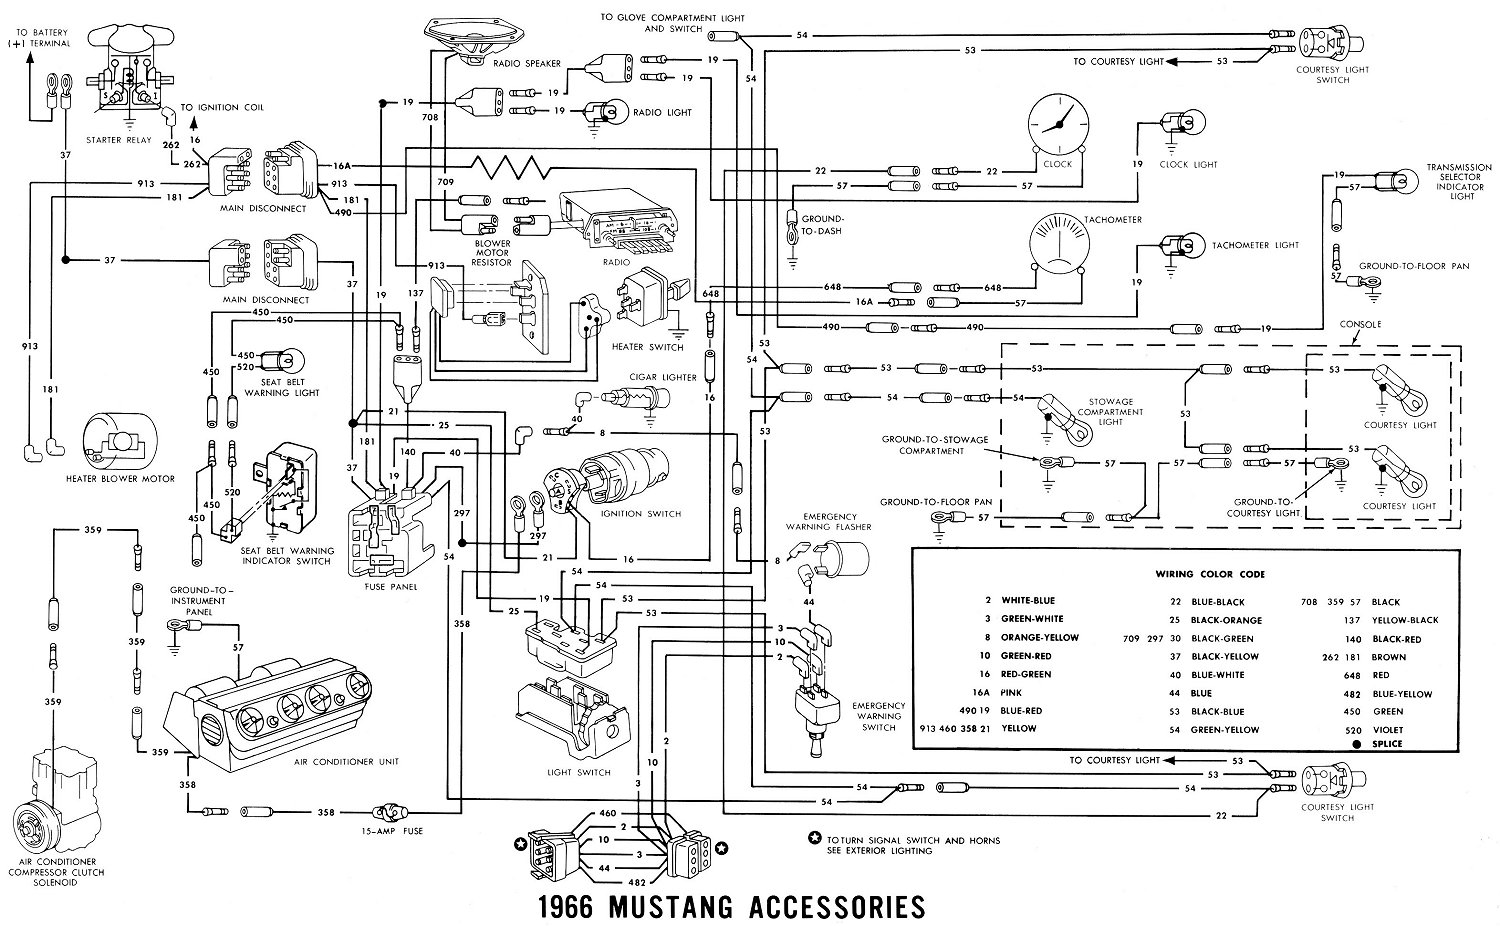 1966 mustang wiring harness diagram detailed schematics diagram rh  lelandlutheran com 2001 Mustang Wiring Schematic 2000 Mustang Engine Diagram